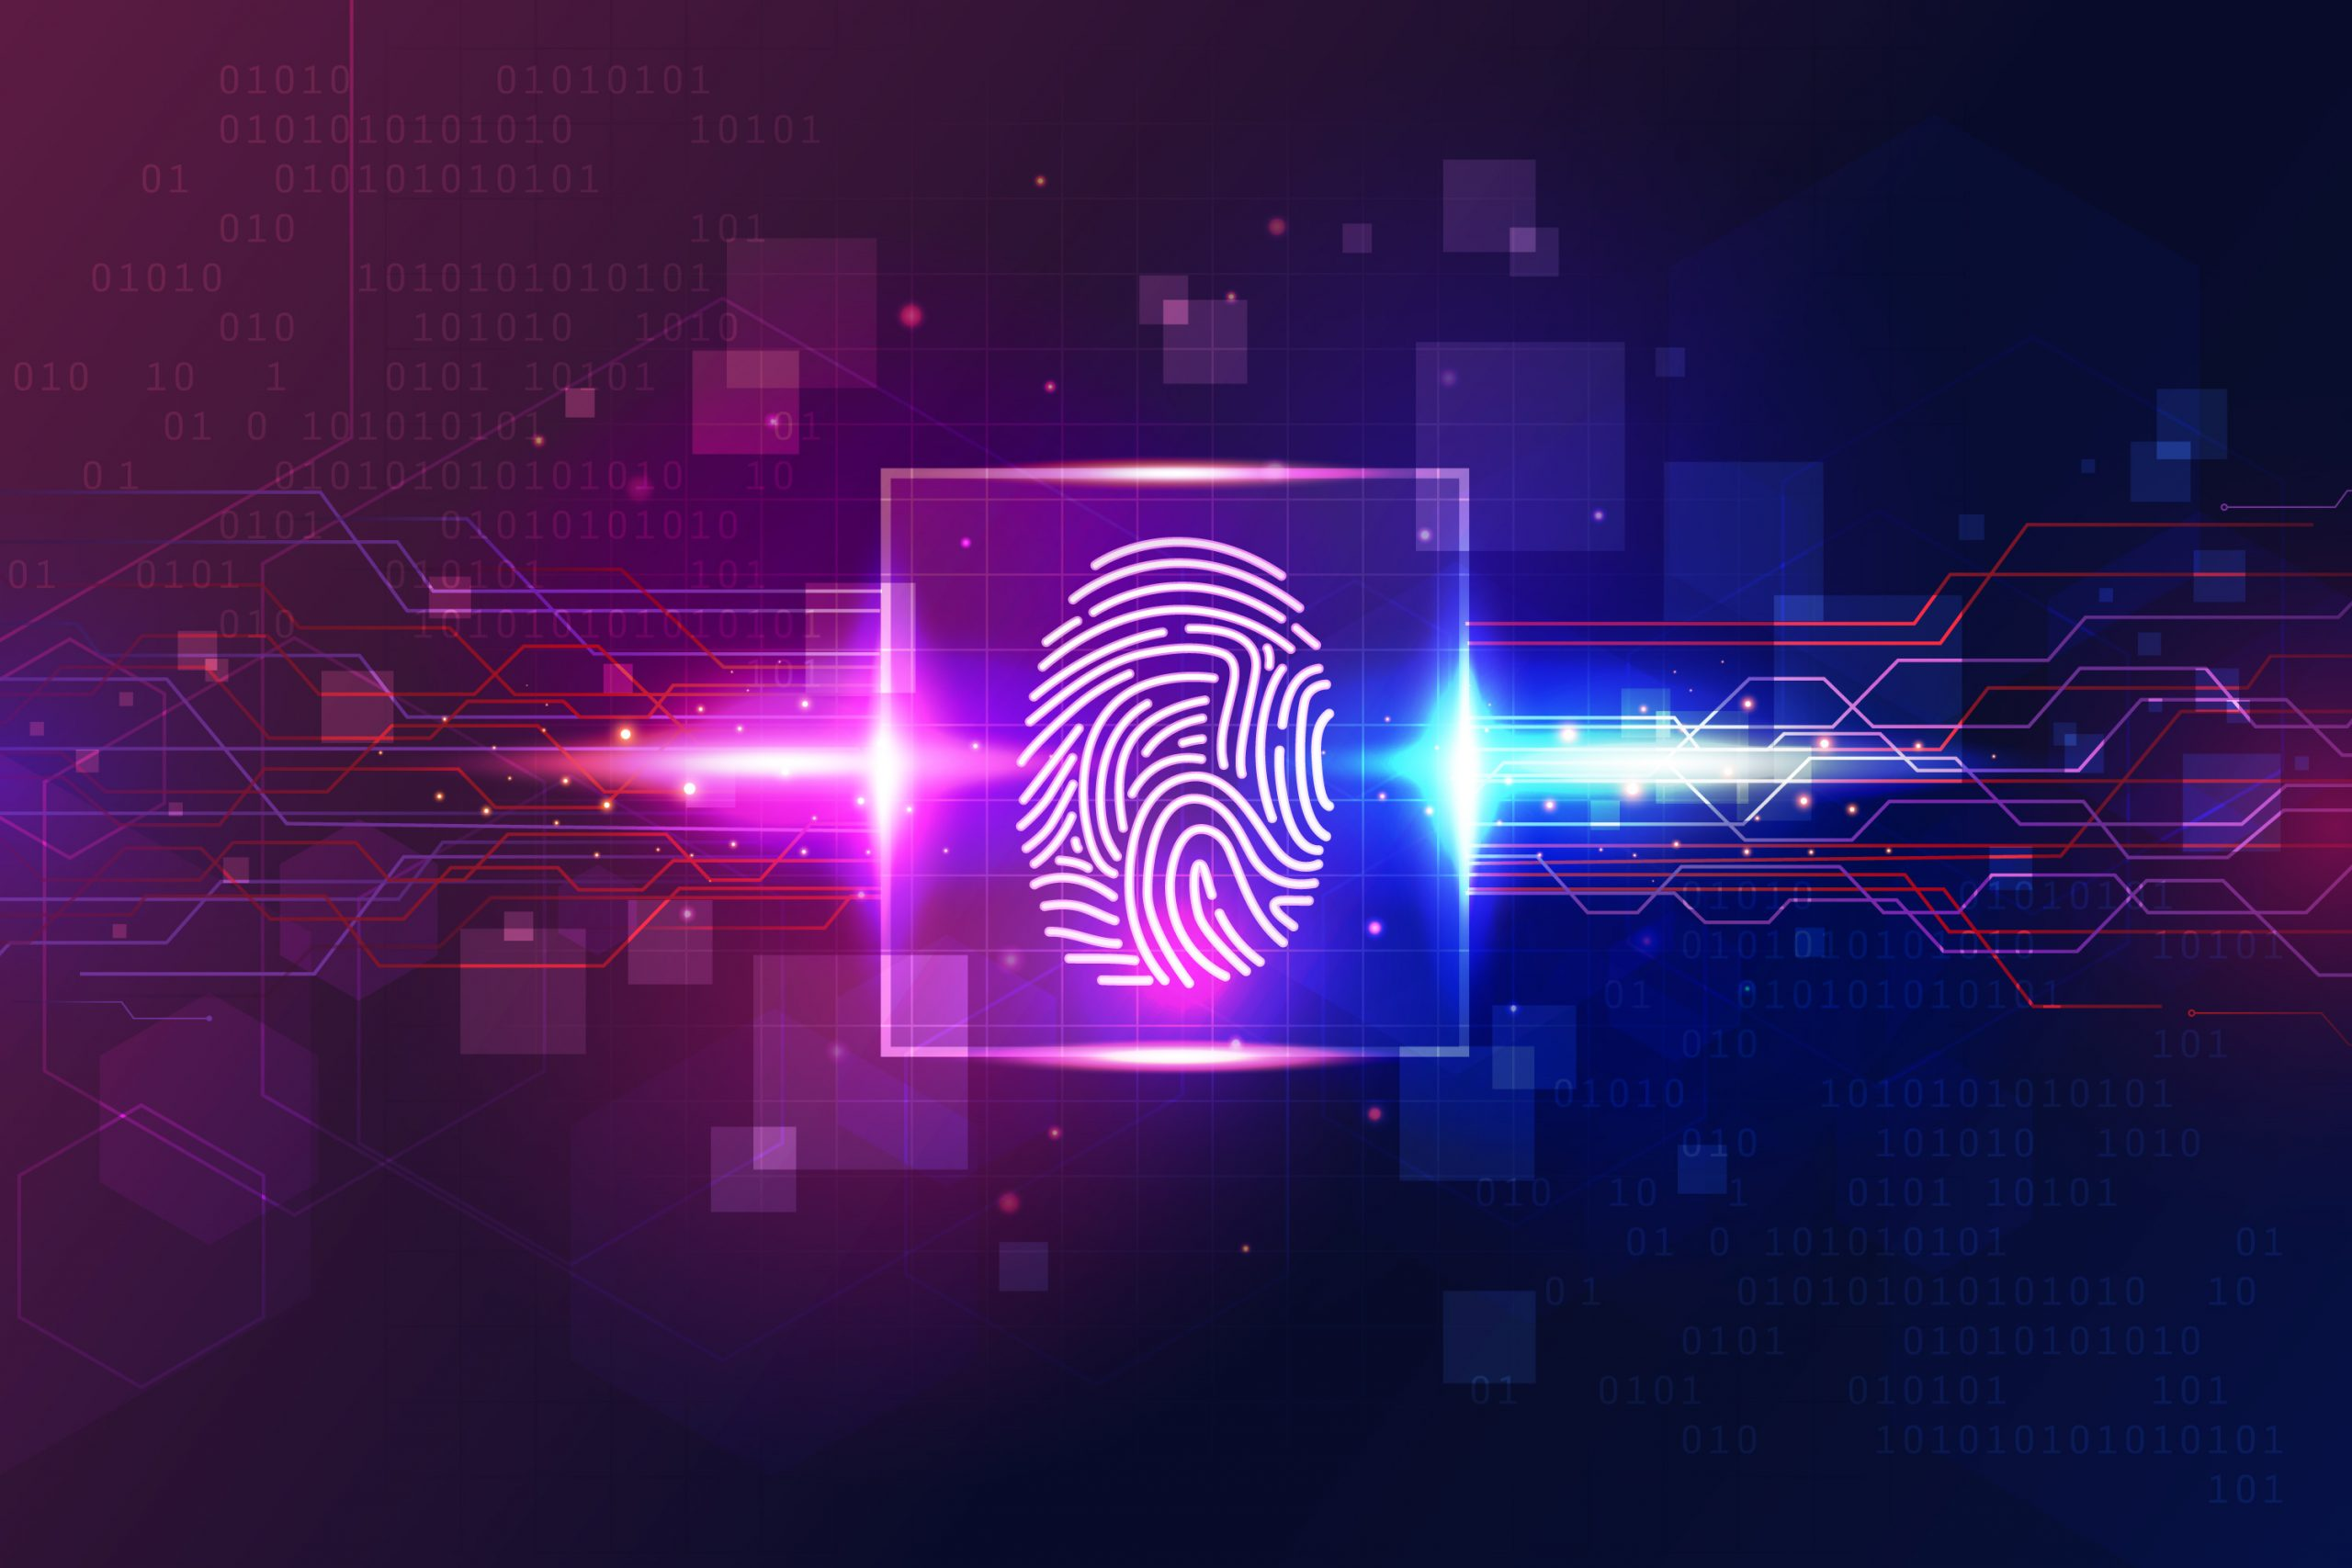 Pressure on Authentication as Businesses Go Remote